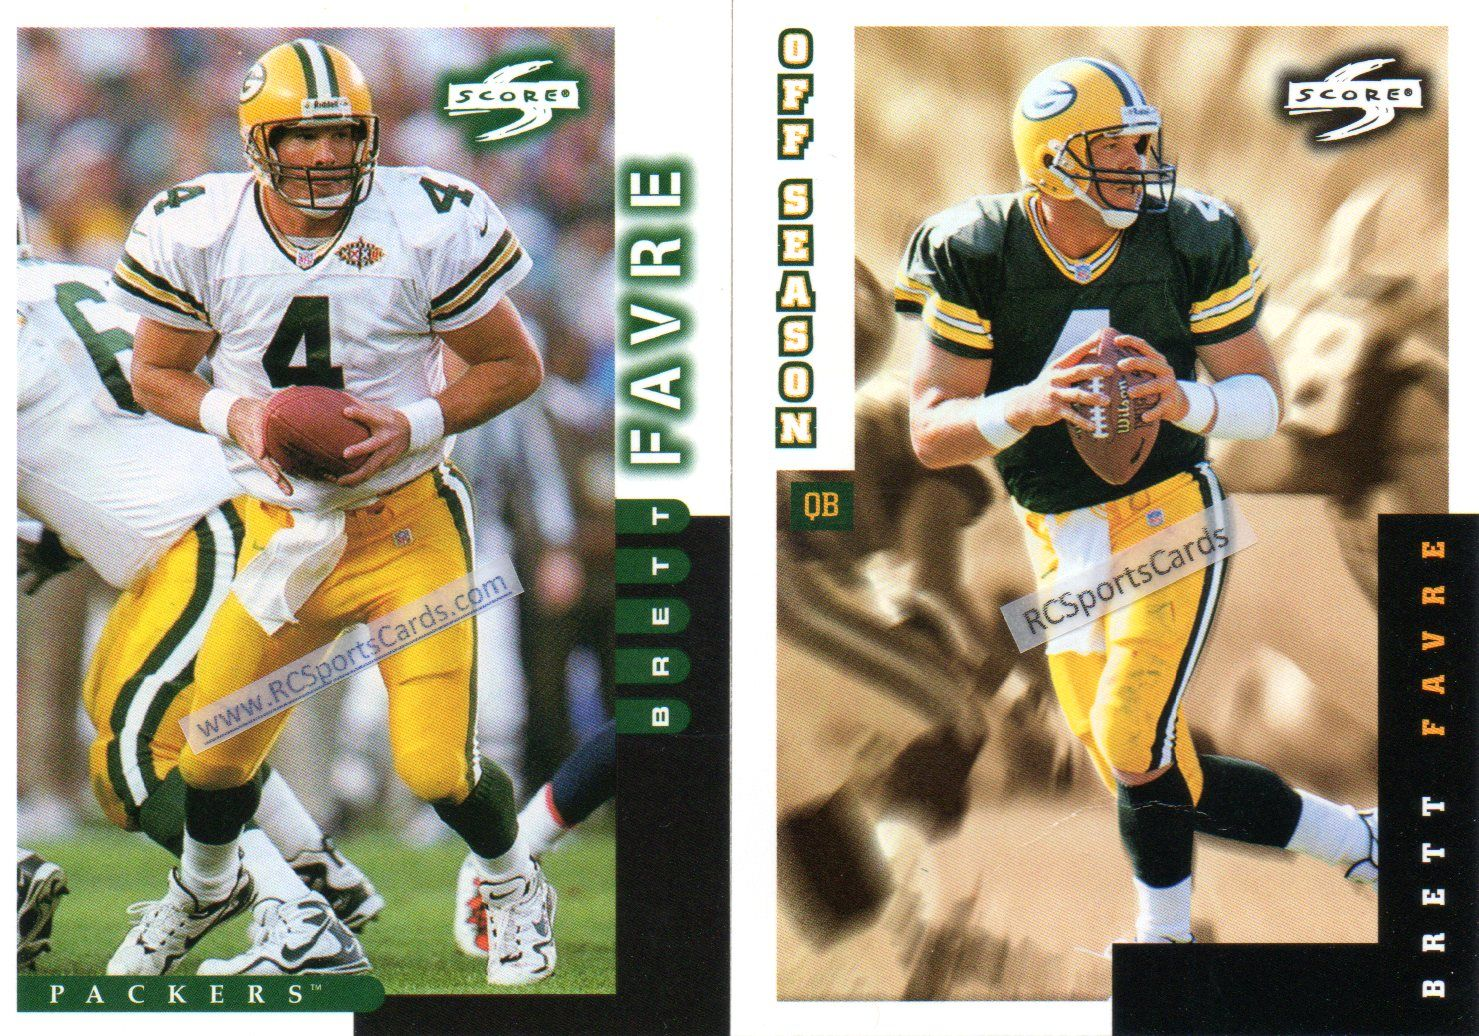 1998 Brett Favre, #Packers, 2 Score cards #66 & #255 http://www.rcsportscards.com/packers-1997---1999.html